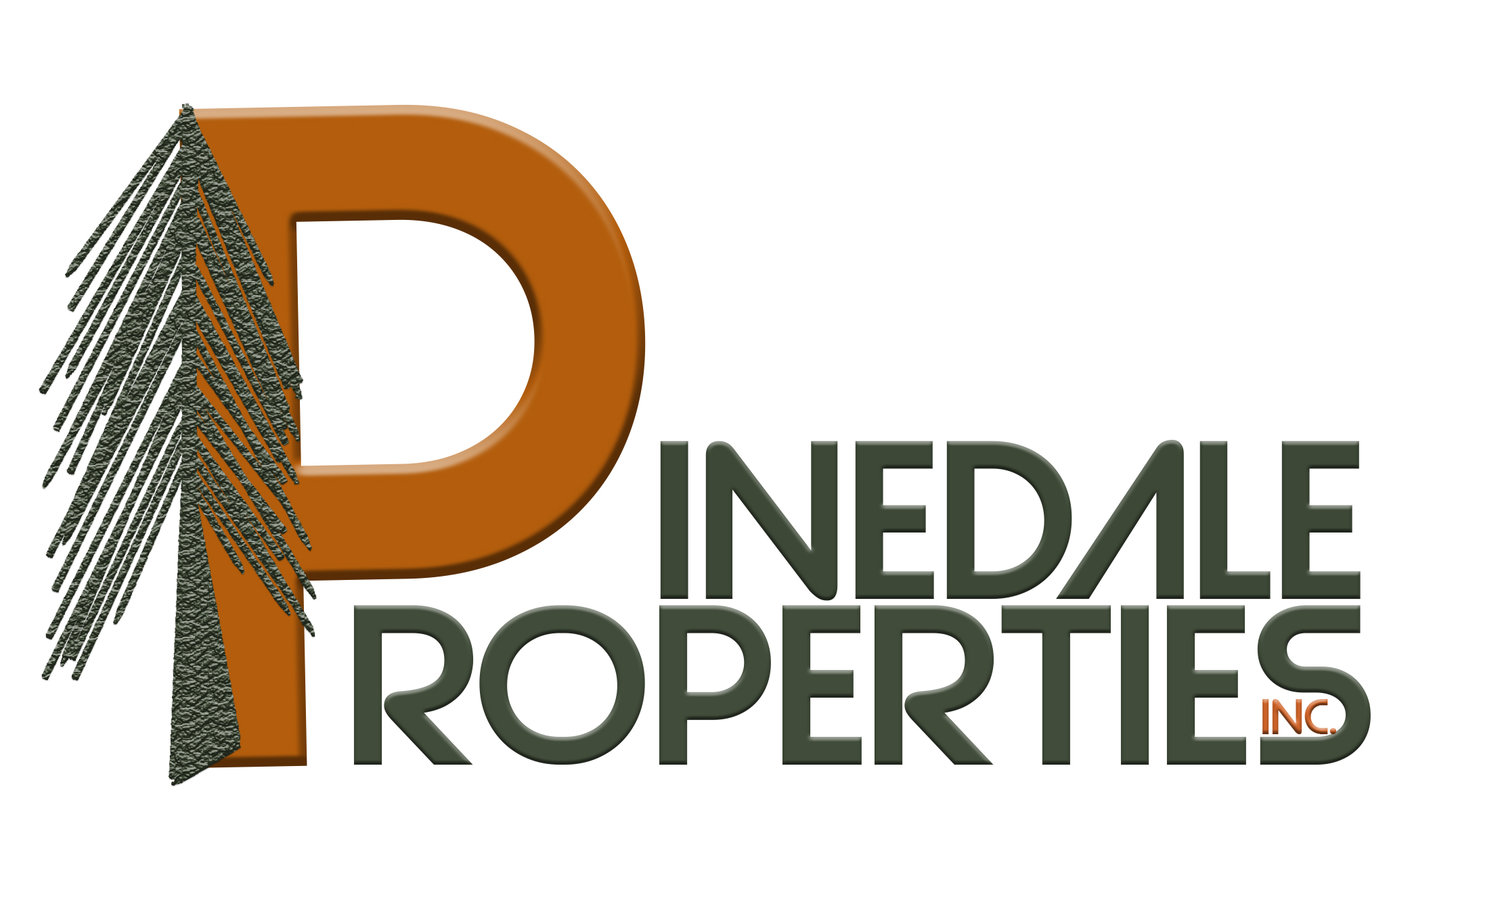 Pinedale Properties